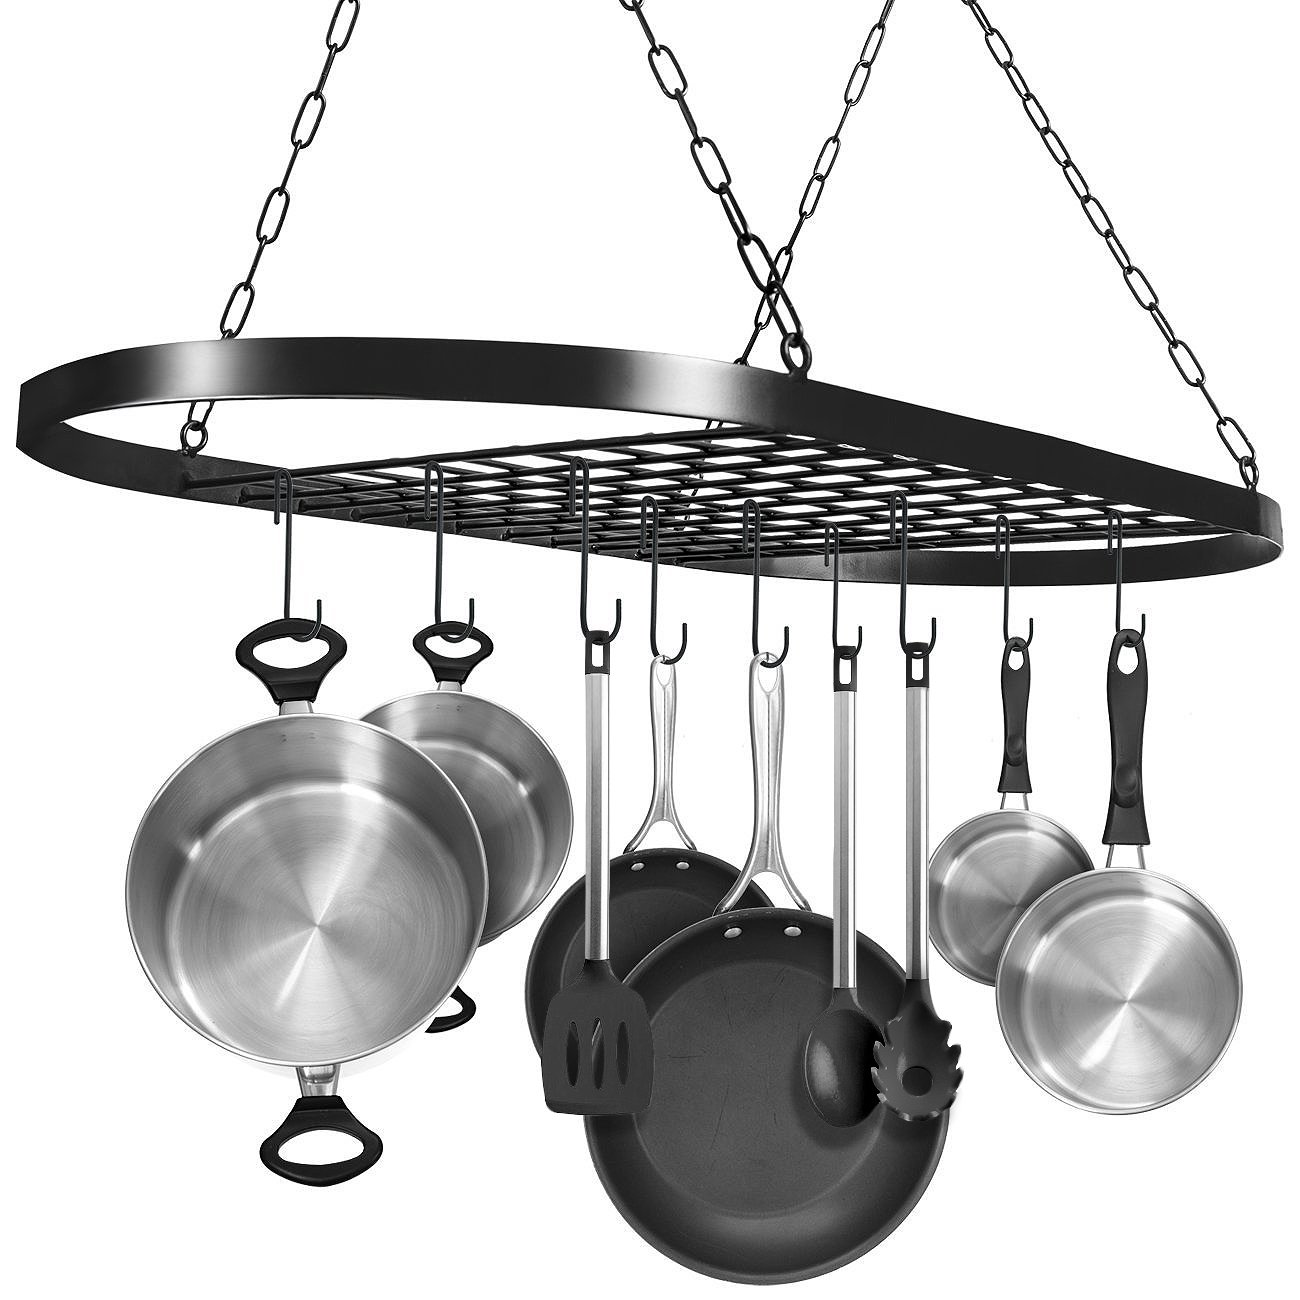 Sorbus Pot and Pan Rack for Ceiling with Hooks - Decorative Oval Mounted Storage Rack - Multi-Purpose Organizer for Home, Restaurant, Kitchen Cookware, Utensils, Books, Household (Hanging Black) by Sorbus